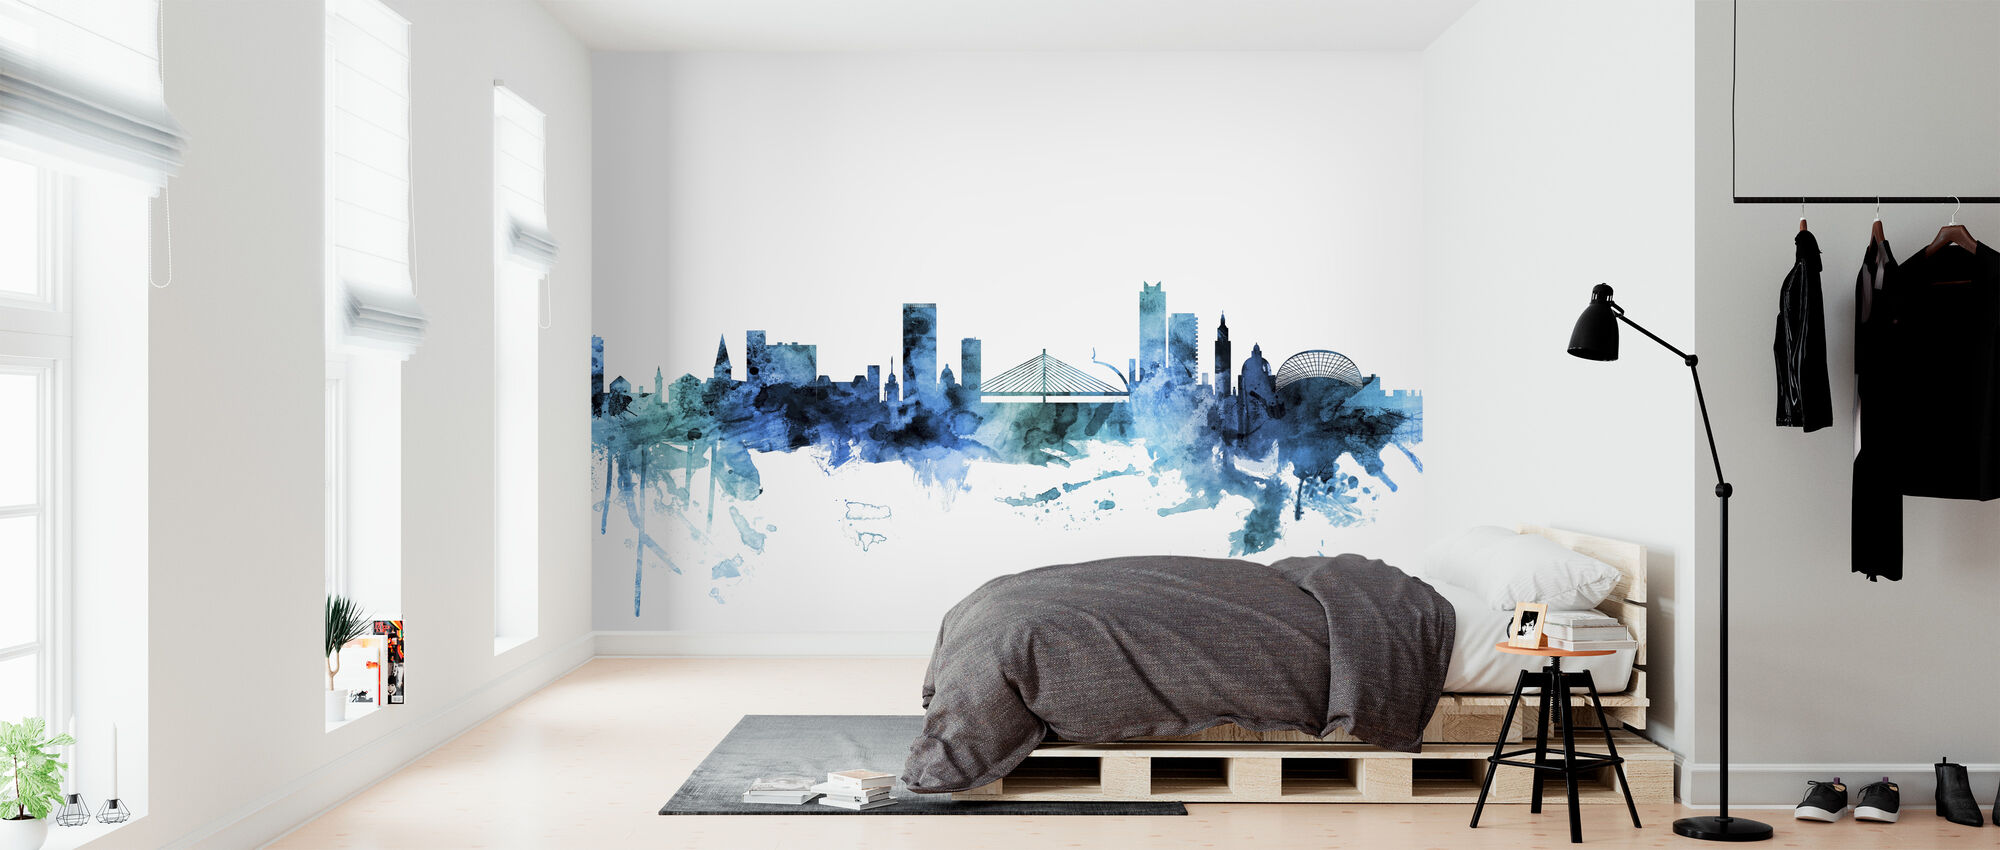 Liege Belgium Skyline - Wallpaper - Bedroom